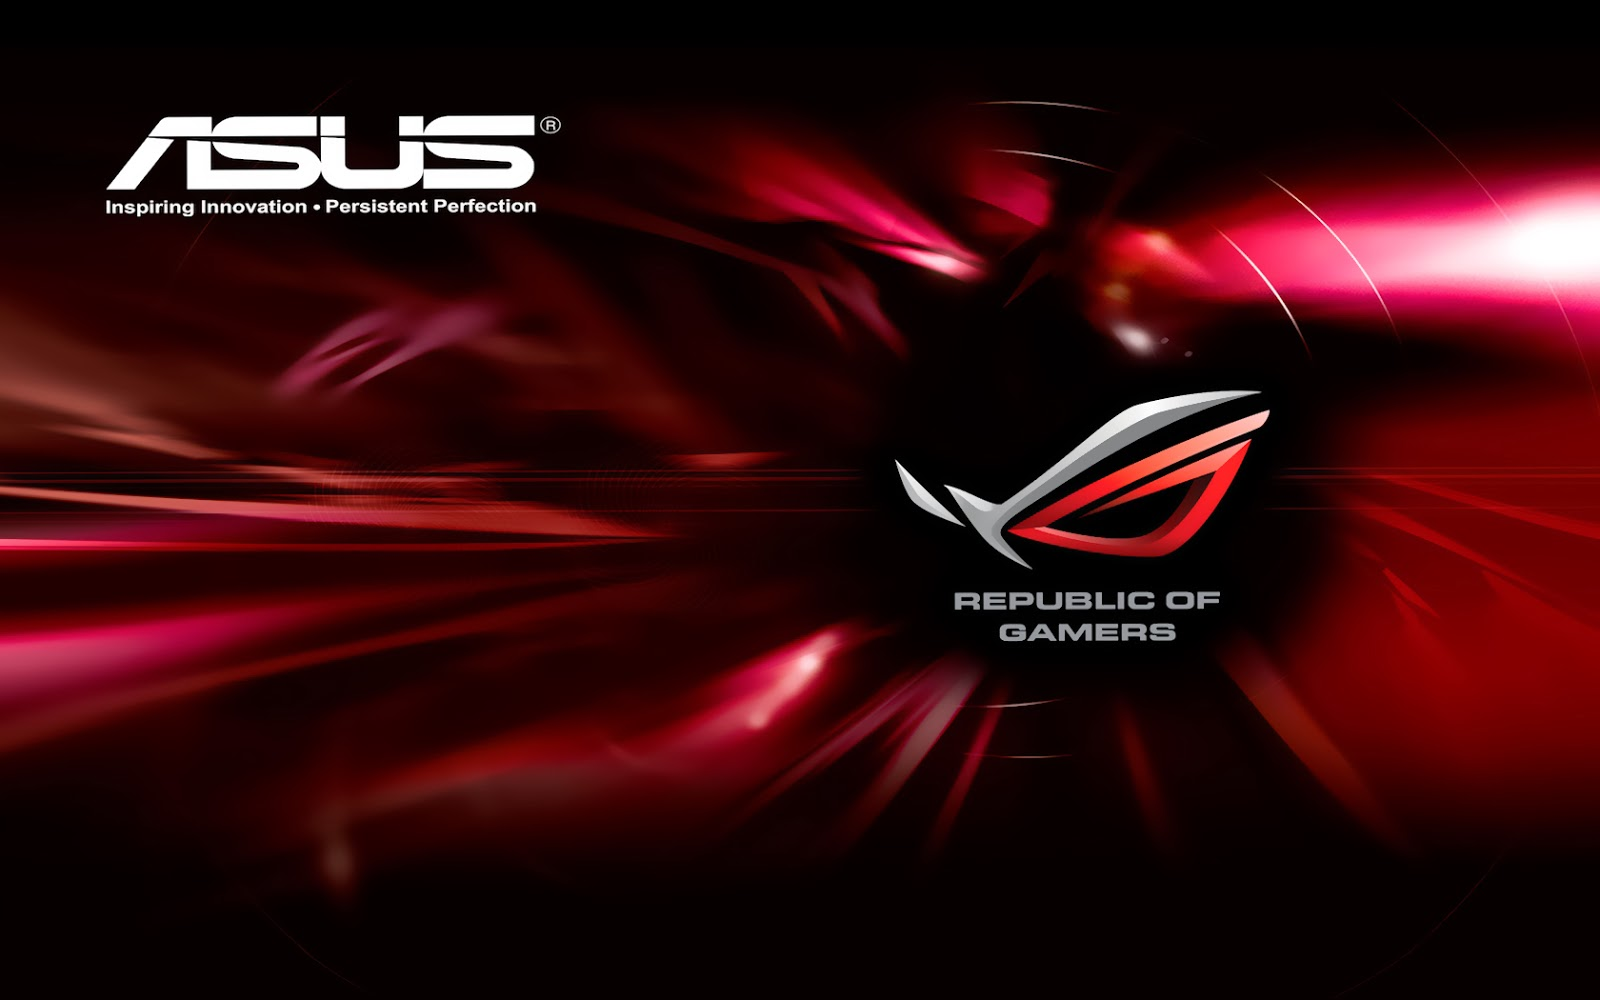 Asus Rog G750jh Technocratic